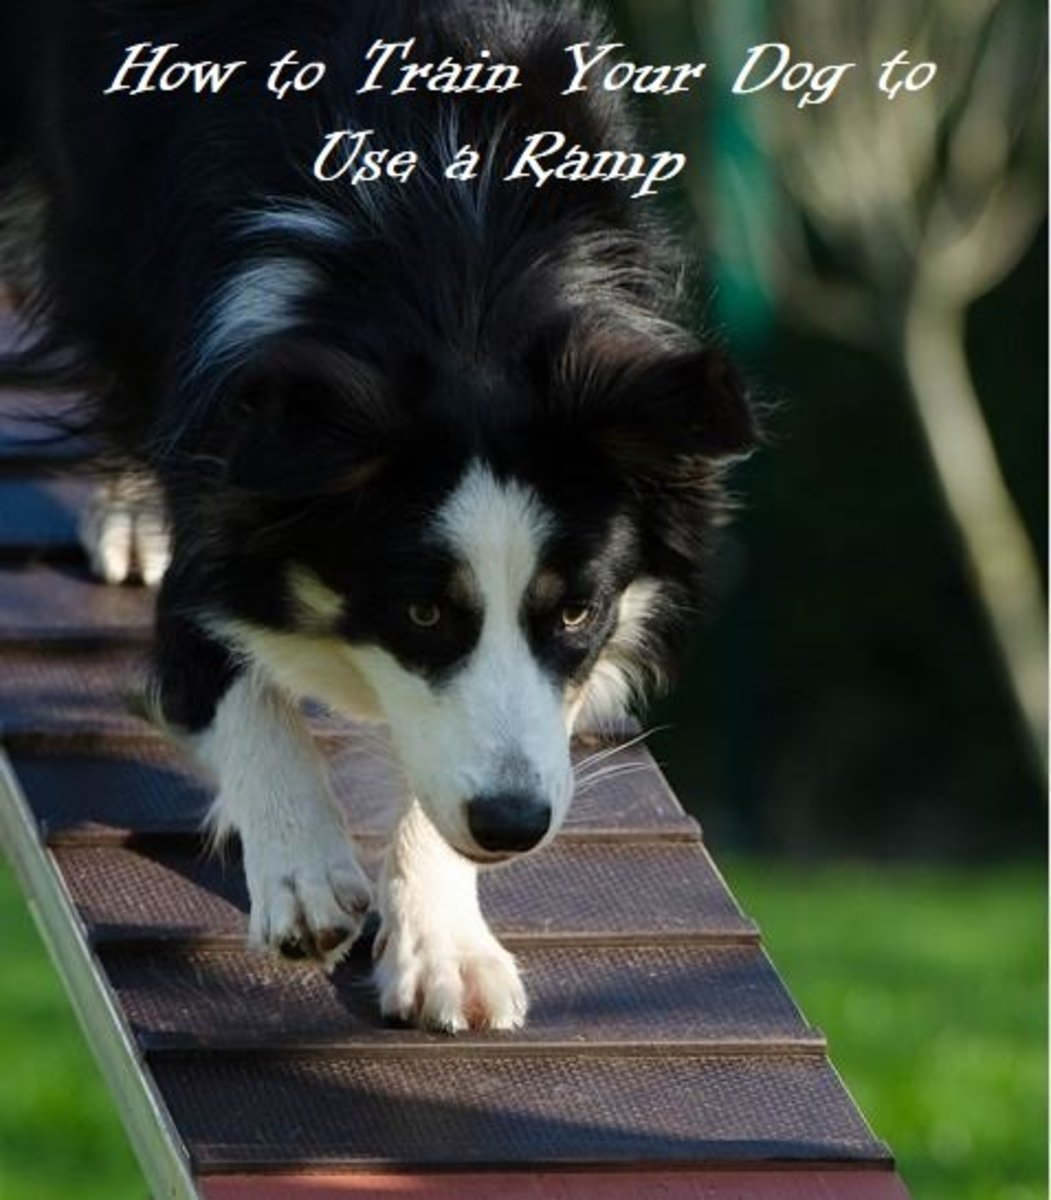 How to Train a Dog to Use a Ramp